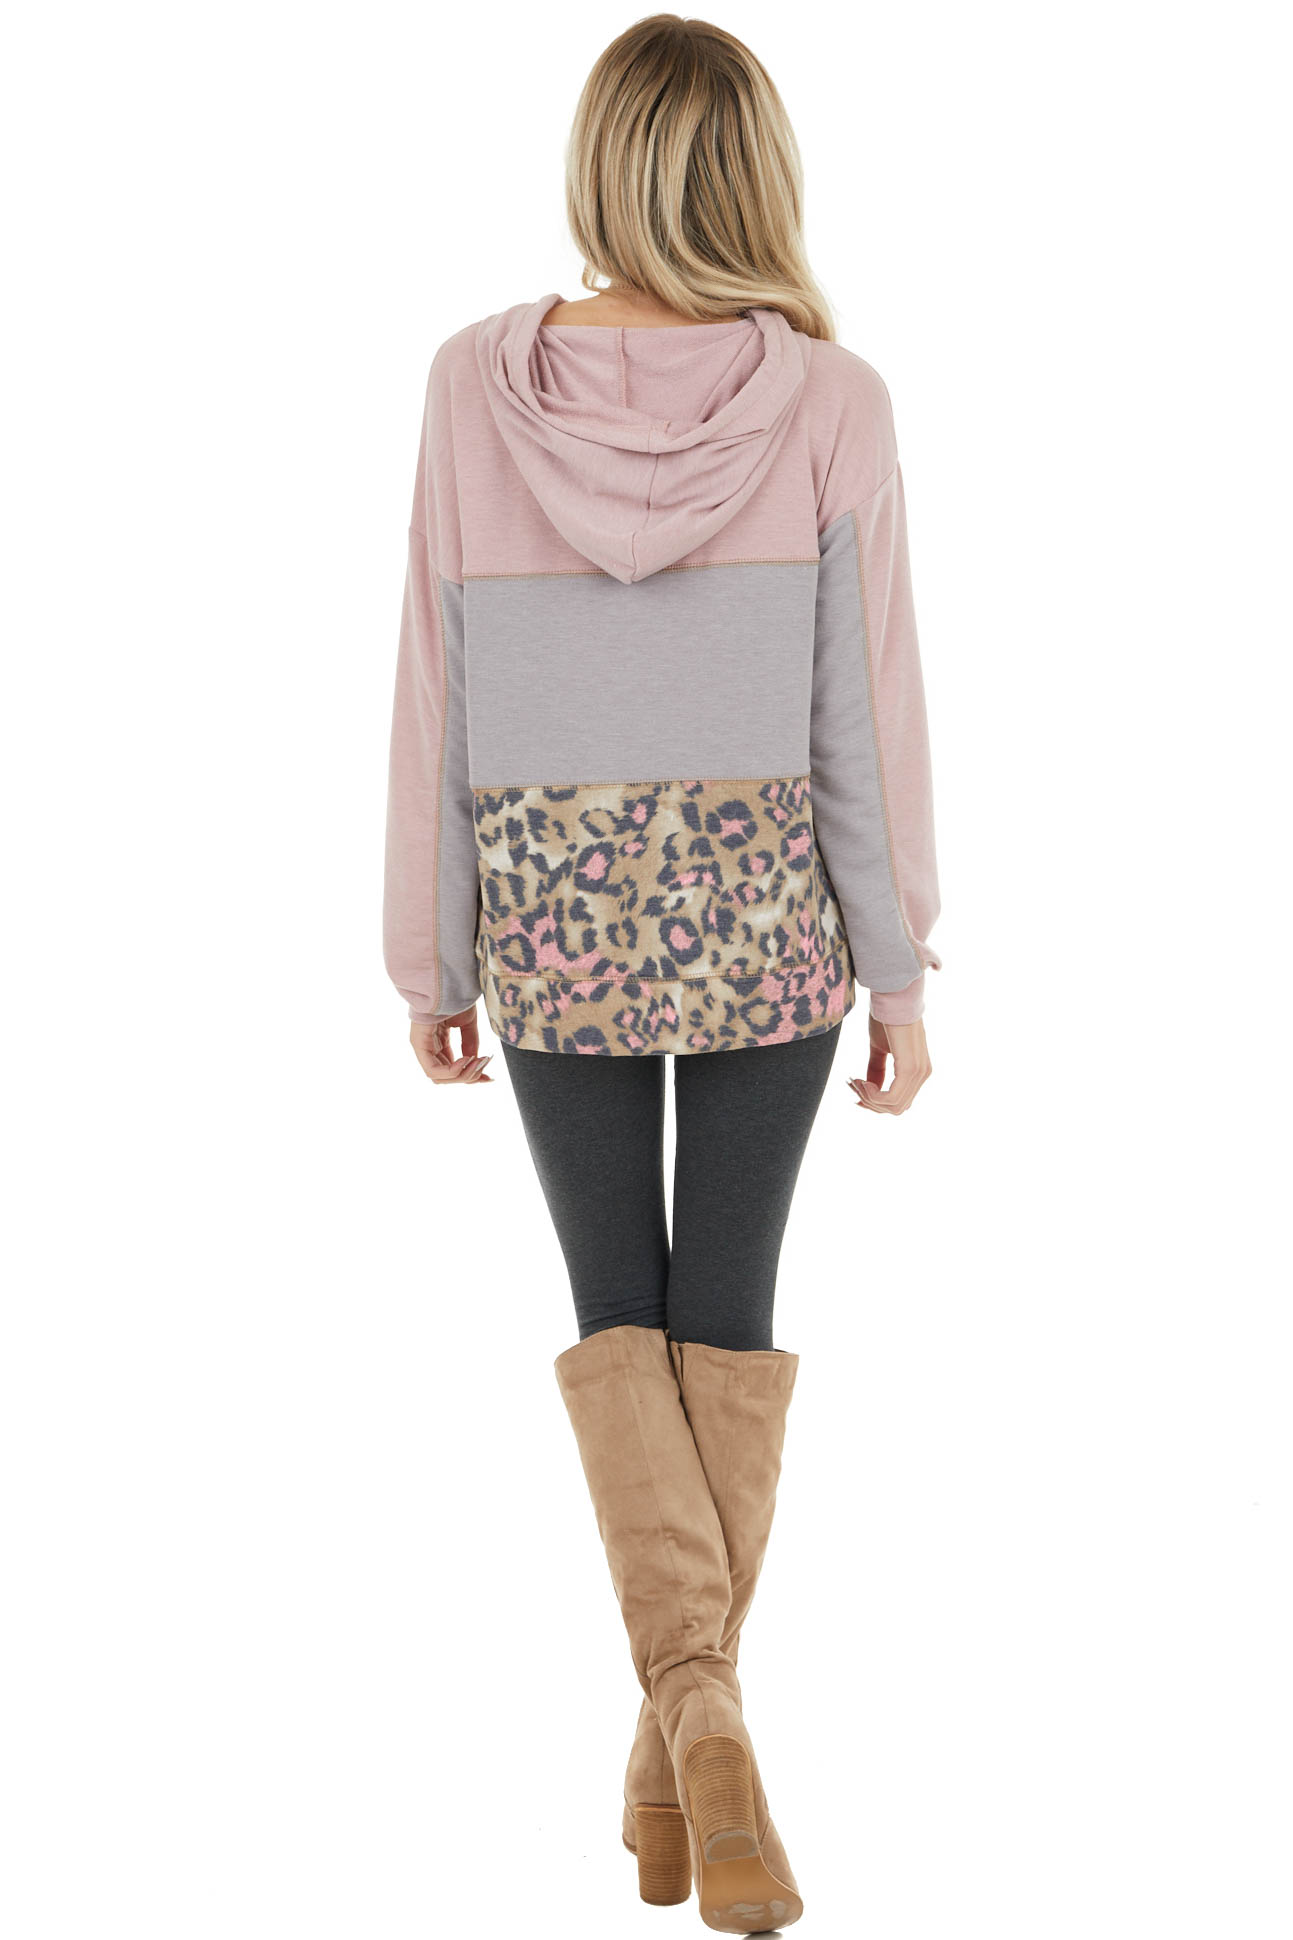 Dusty Rose Leopard Print Colorblock Lightweight Hoodie